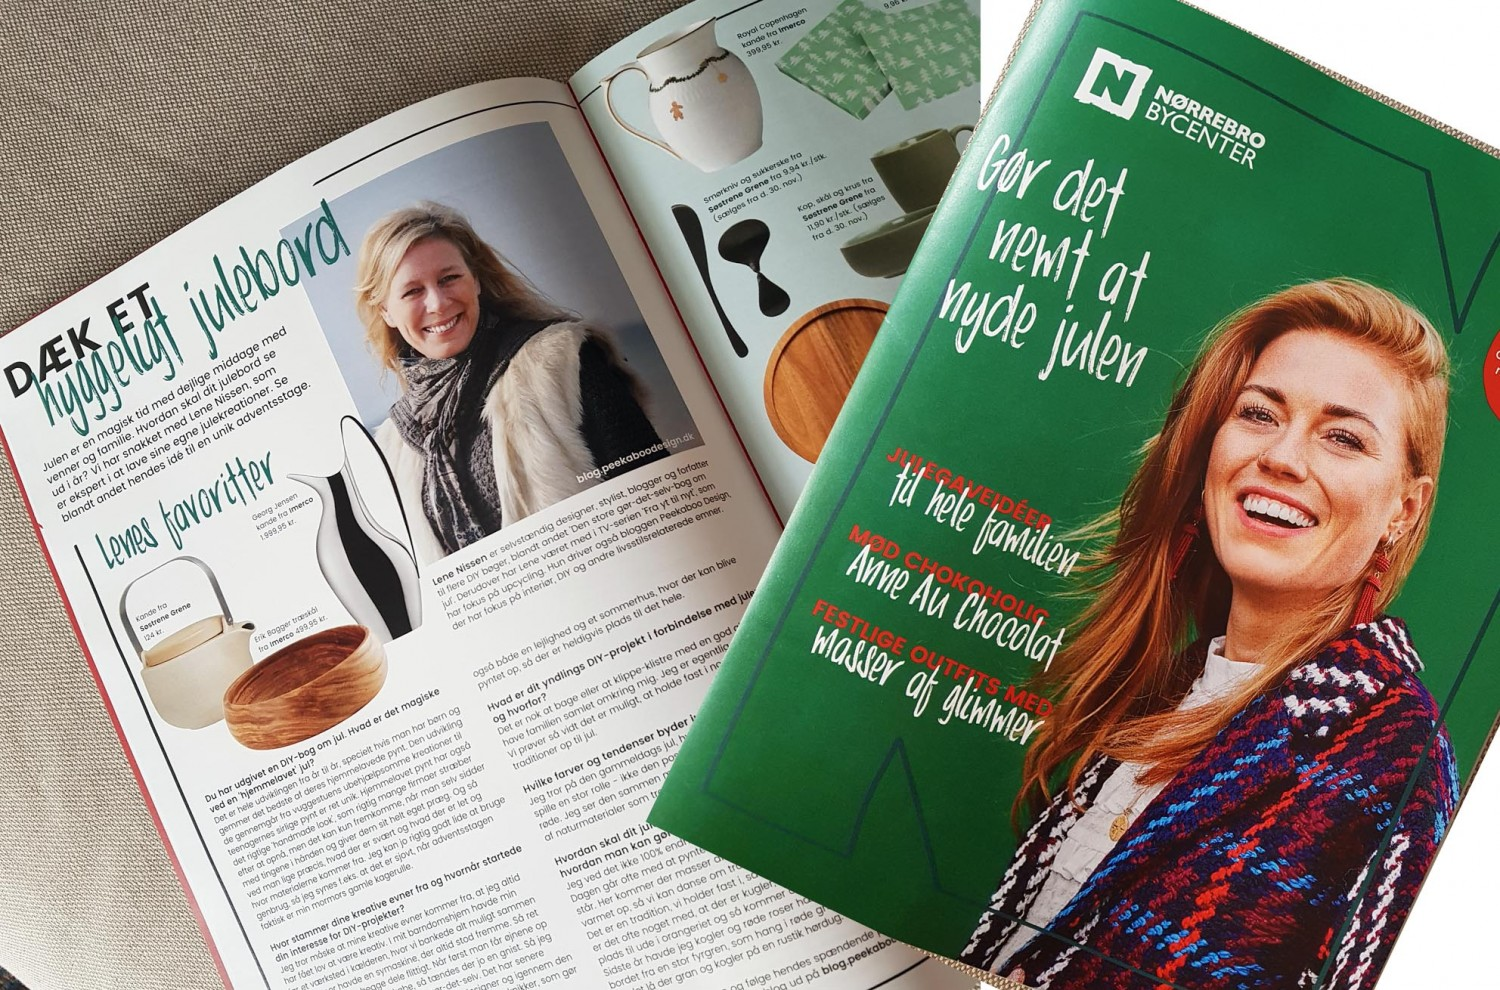 Me and some DIY's from my christmas book is beeing featured in Nørrebro Bycenters juleblad.